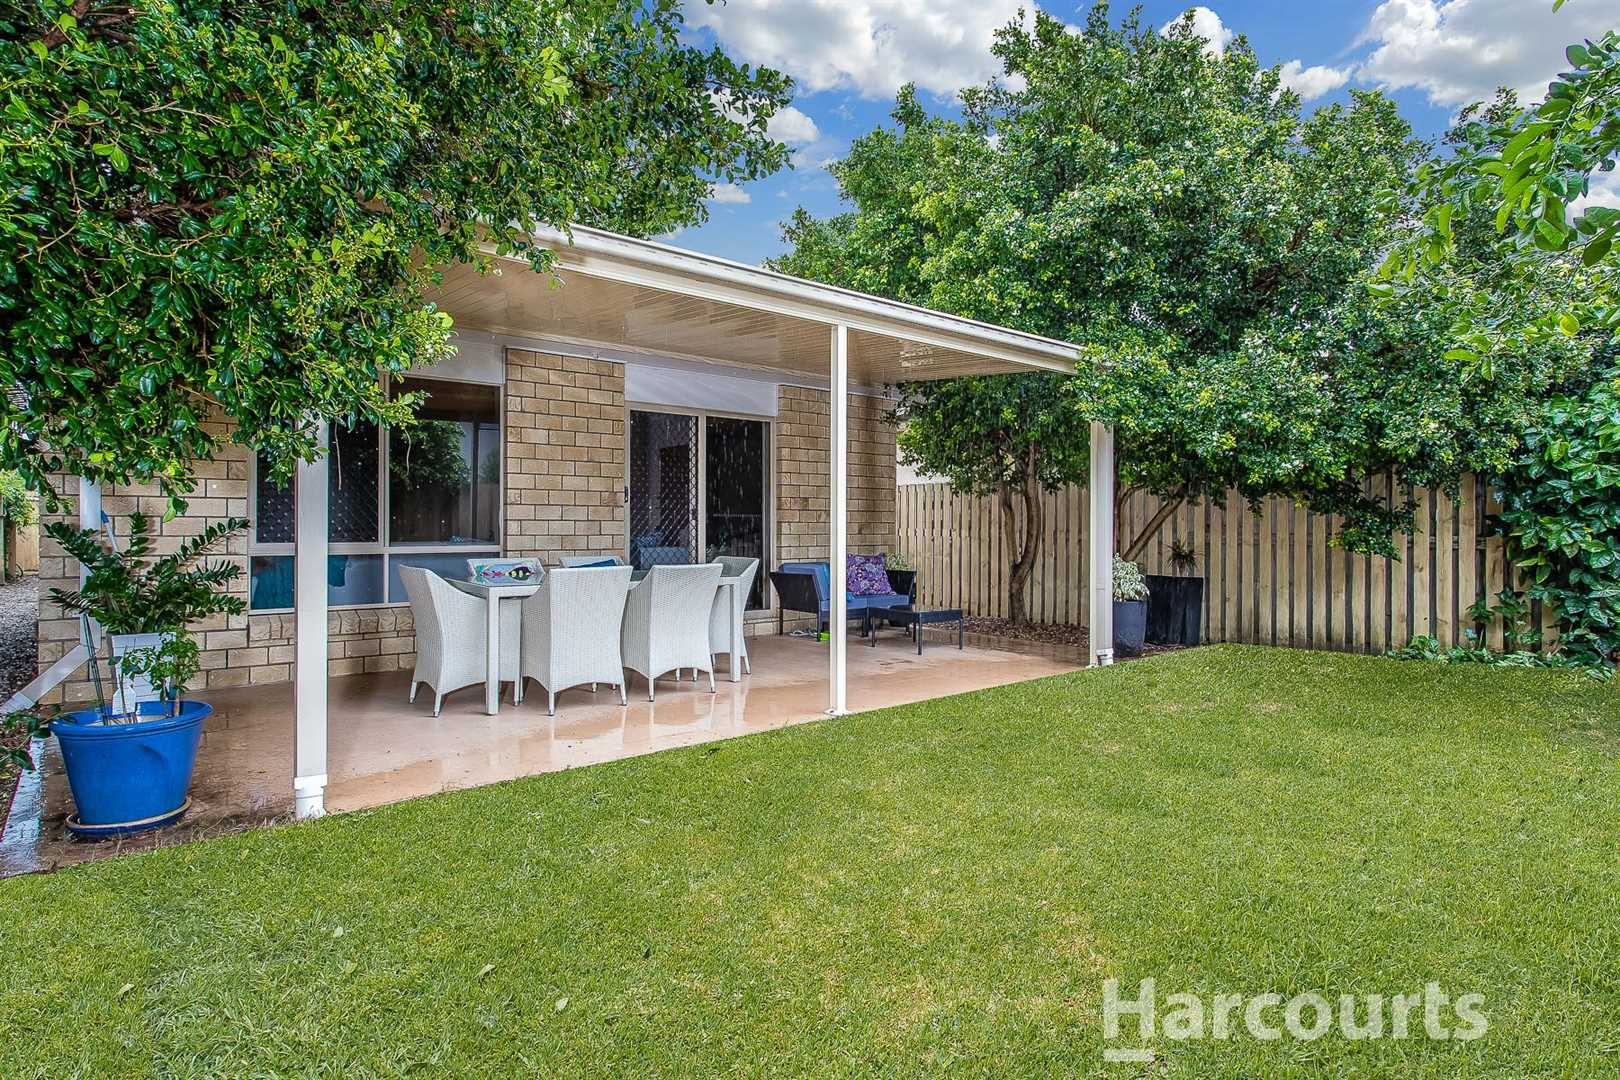 4 Bedroom Home in a Lovely Location!